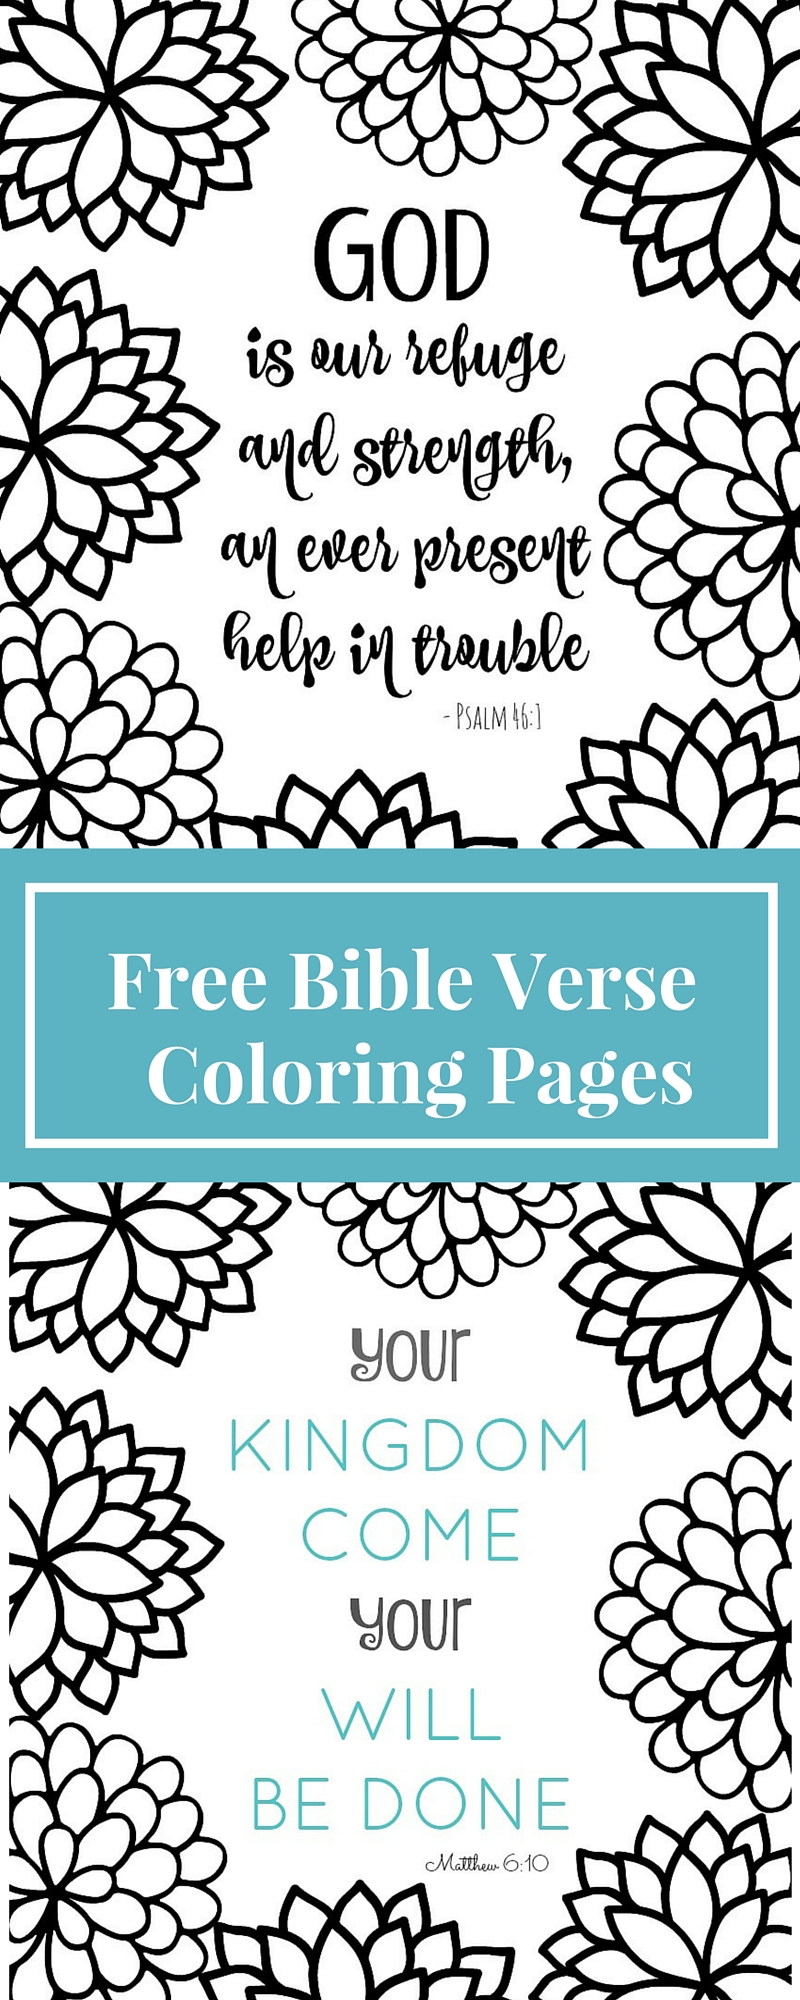 Coloring pages are for grown ups now! These Bible verse coloring page printables are fun & relaxing to color. This blog has tons of free printable adult coloring pages!